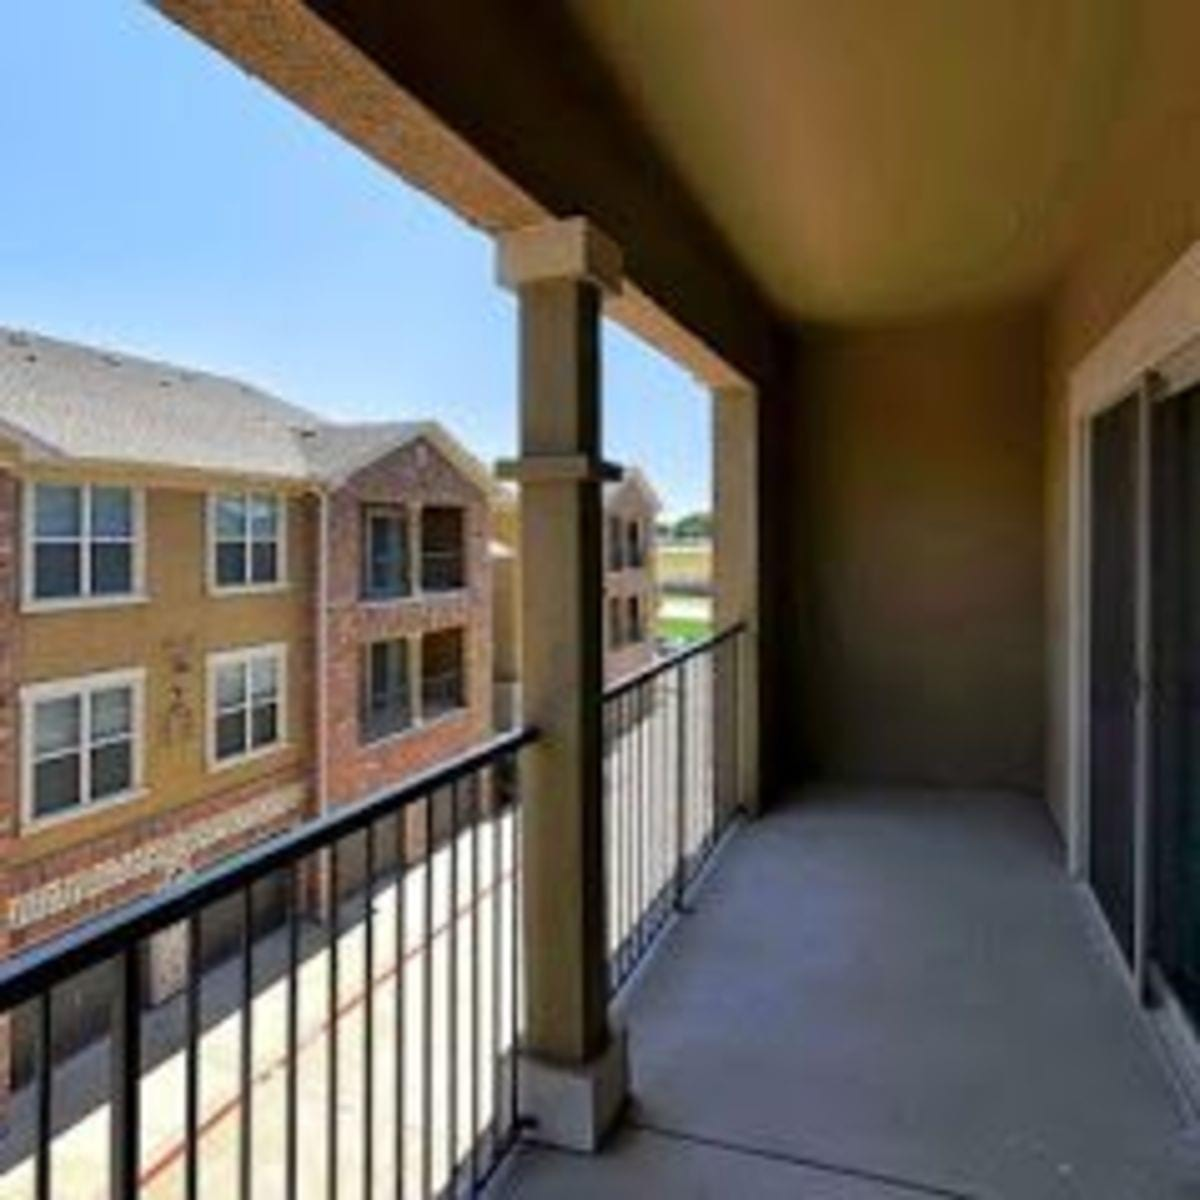 Apartments In Grand Prairie Tx Under 700: Apartments For Rent In Grand Prairie, TX